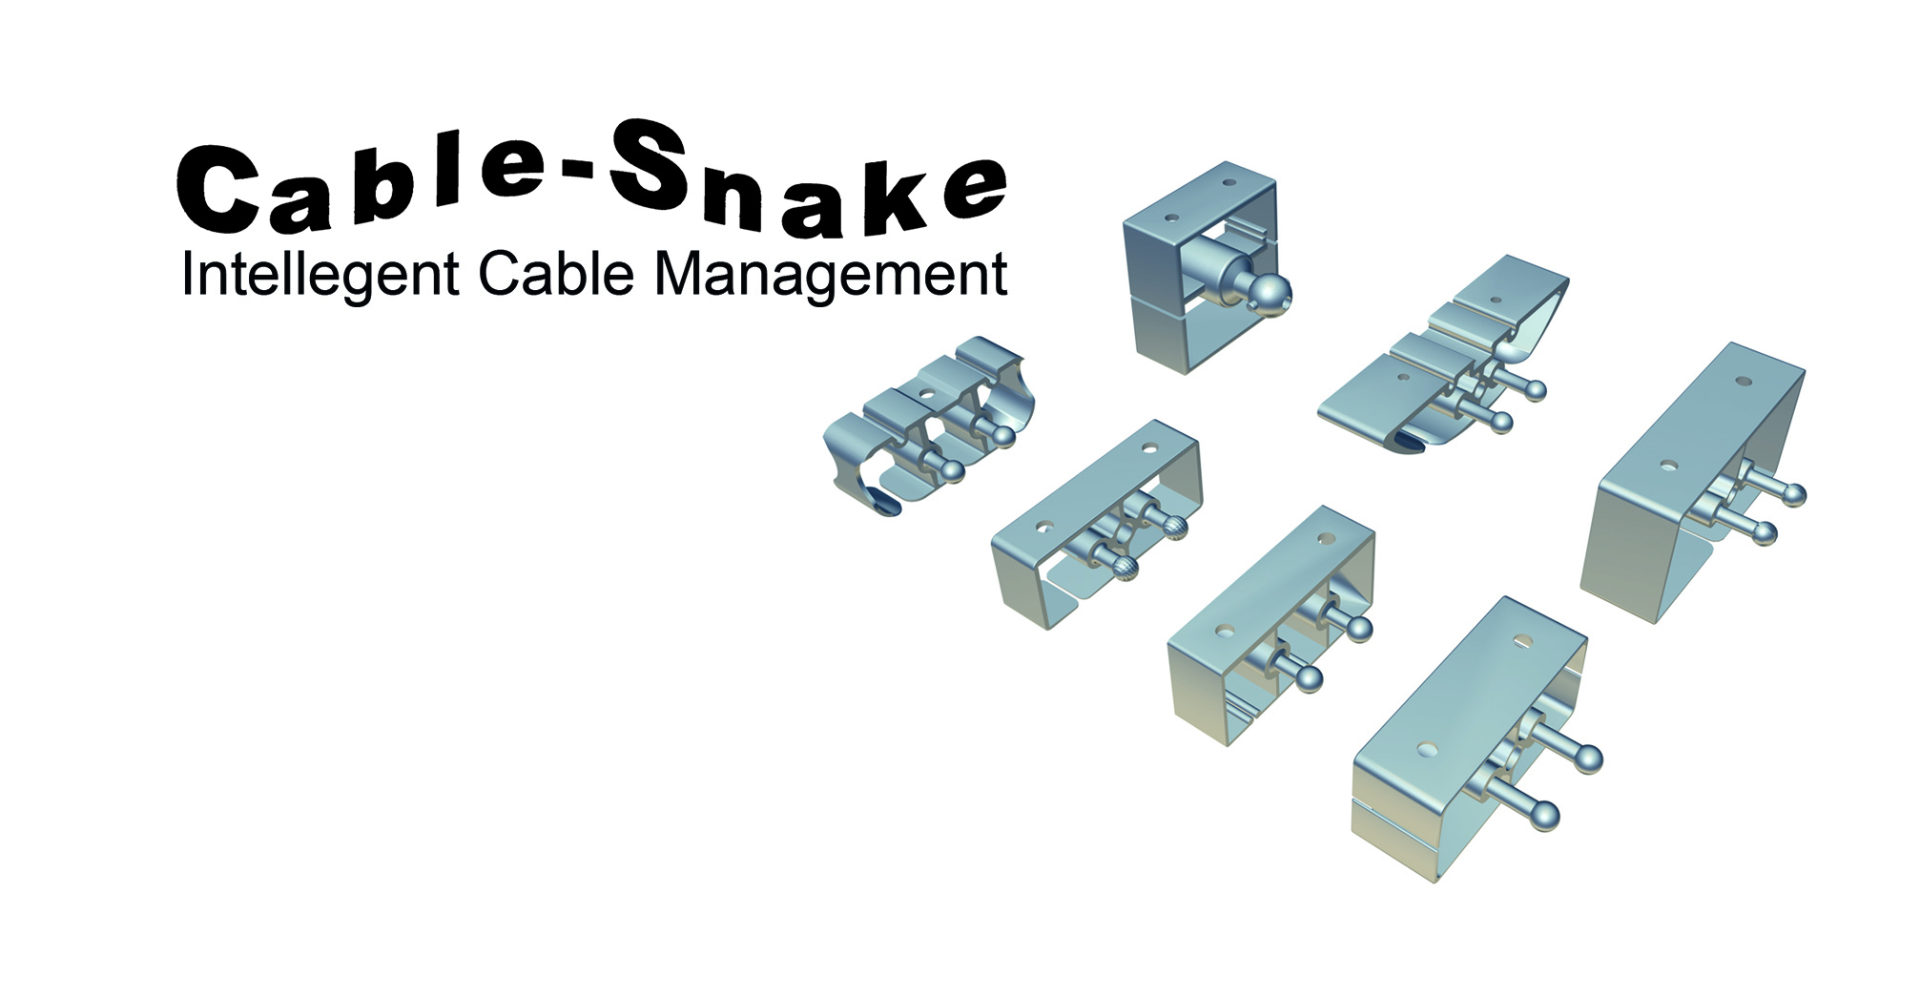 Cable-Snake